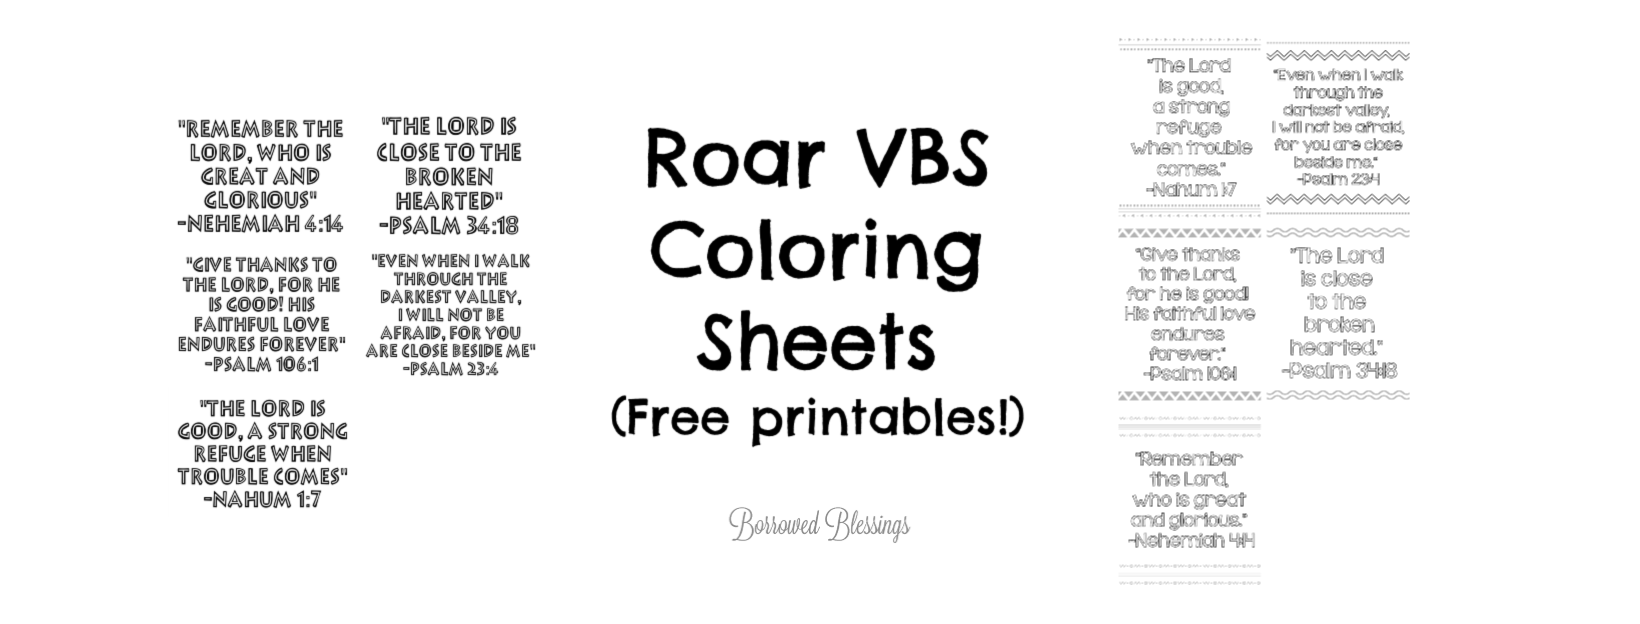 vbs coloring pages 2020 roar vbs printable bible verse coloring sheets borrowed vbs coloring 2020 pages